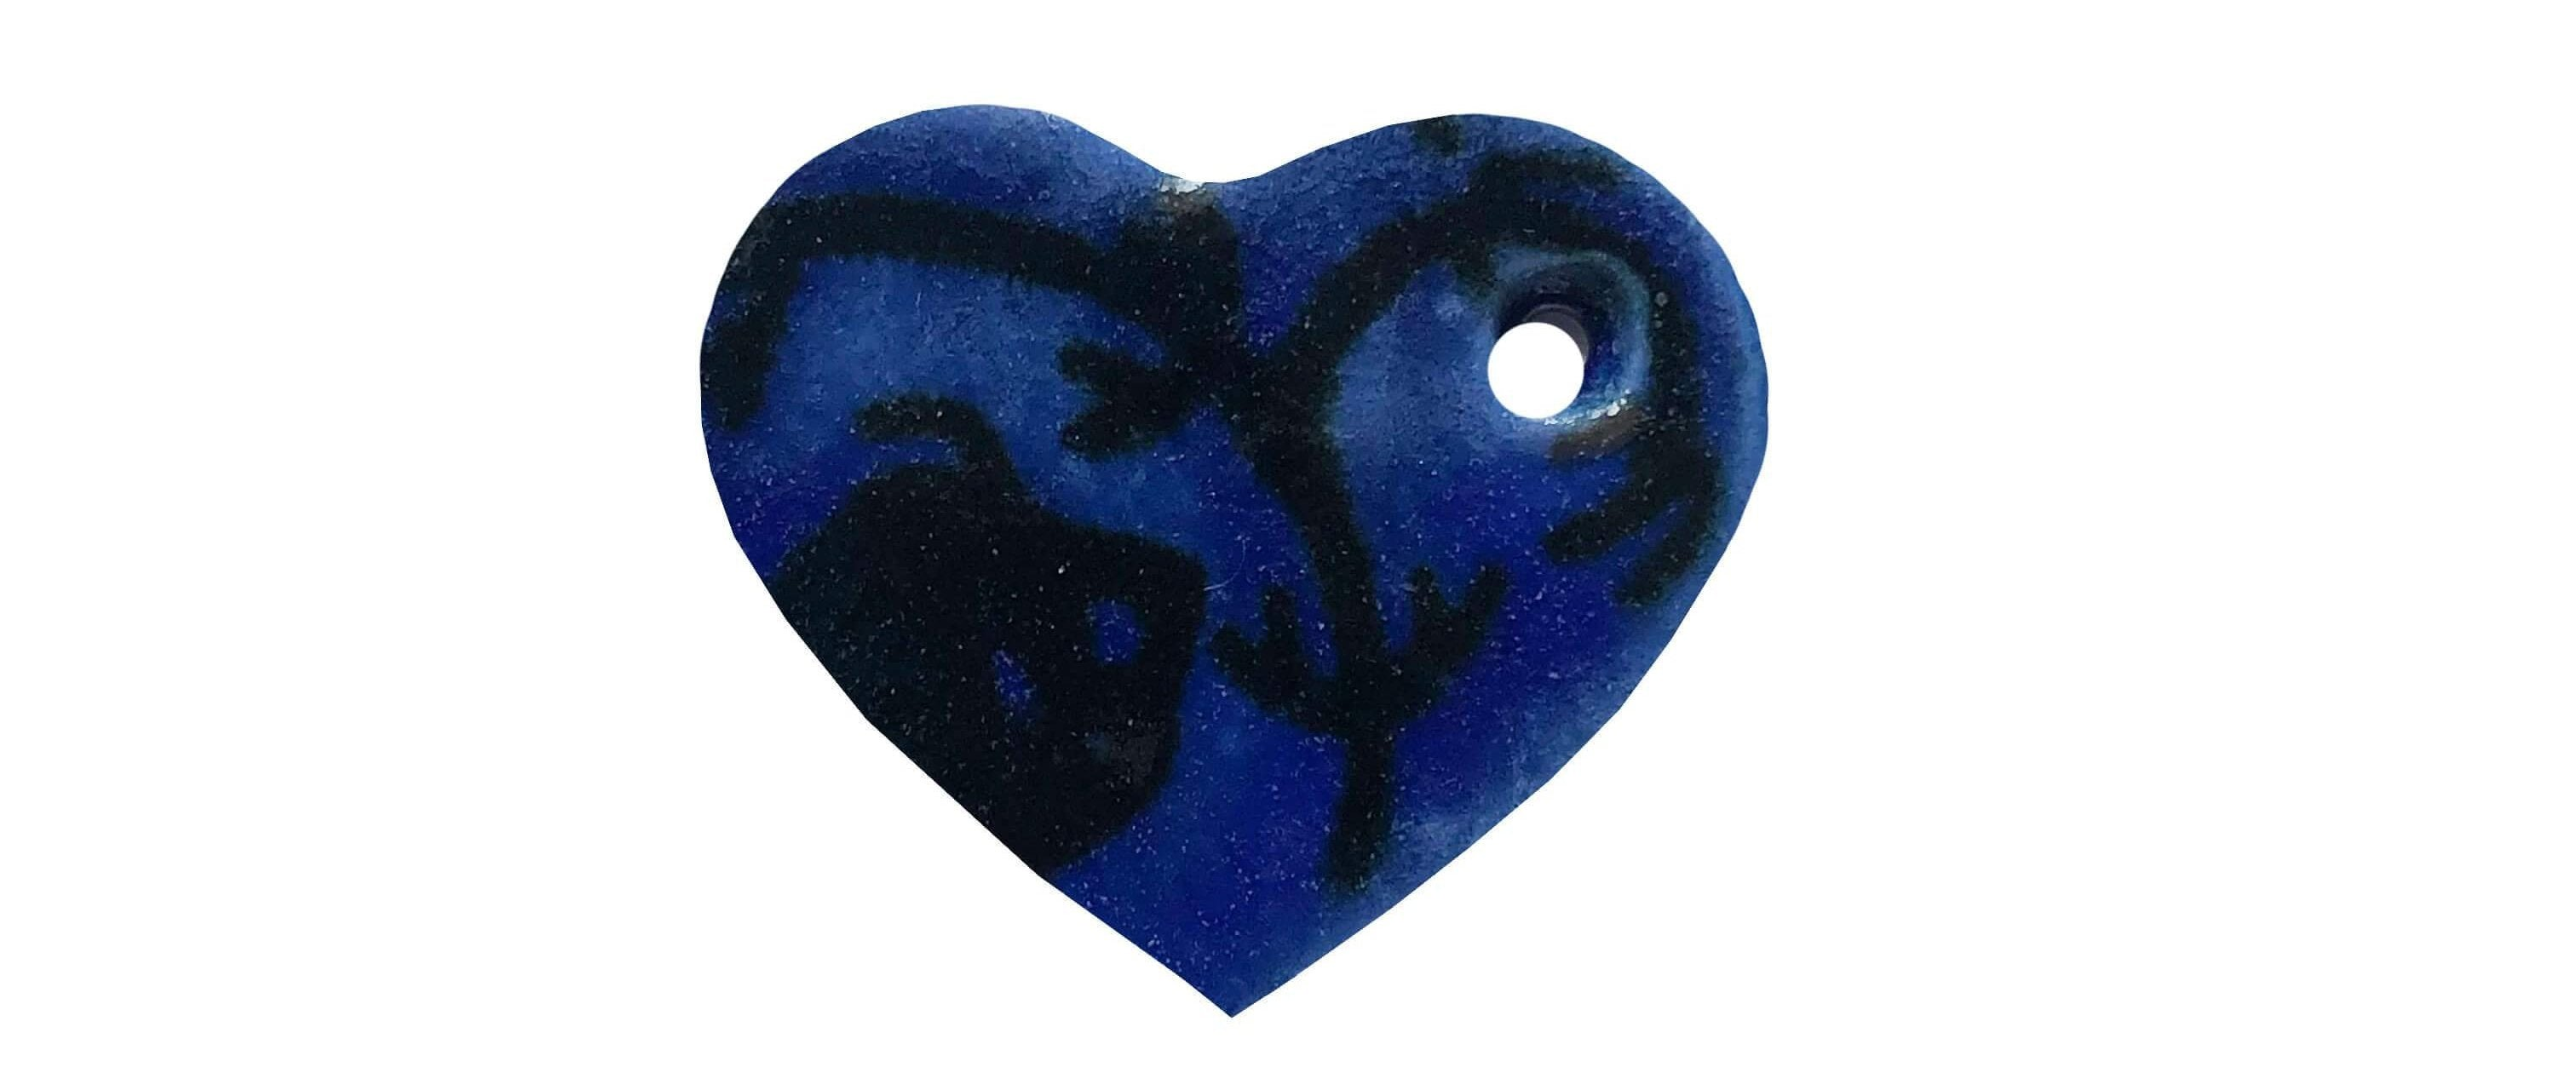 Blue and black heart-shaped ceramic dog name tag